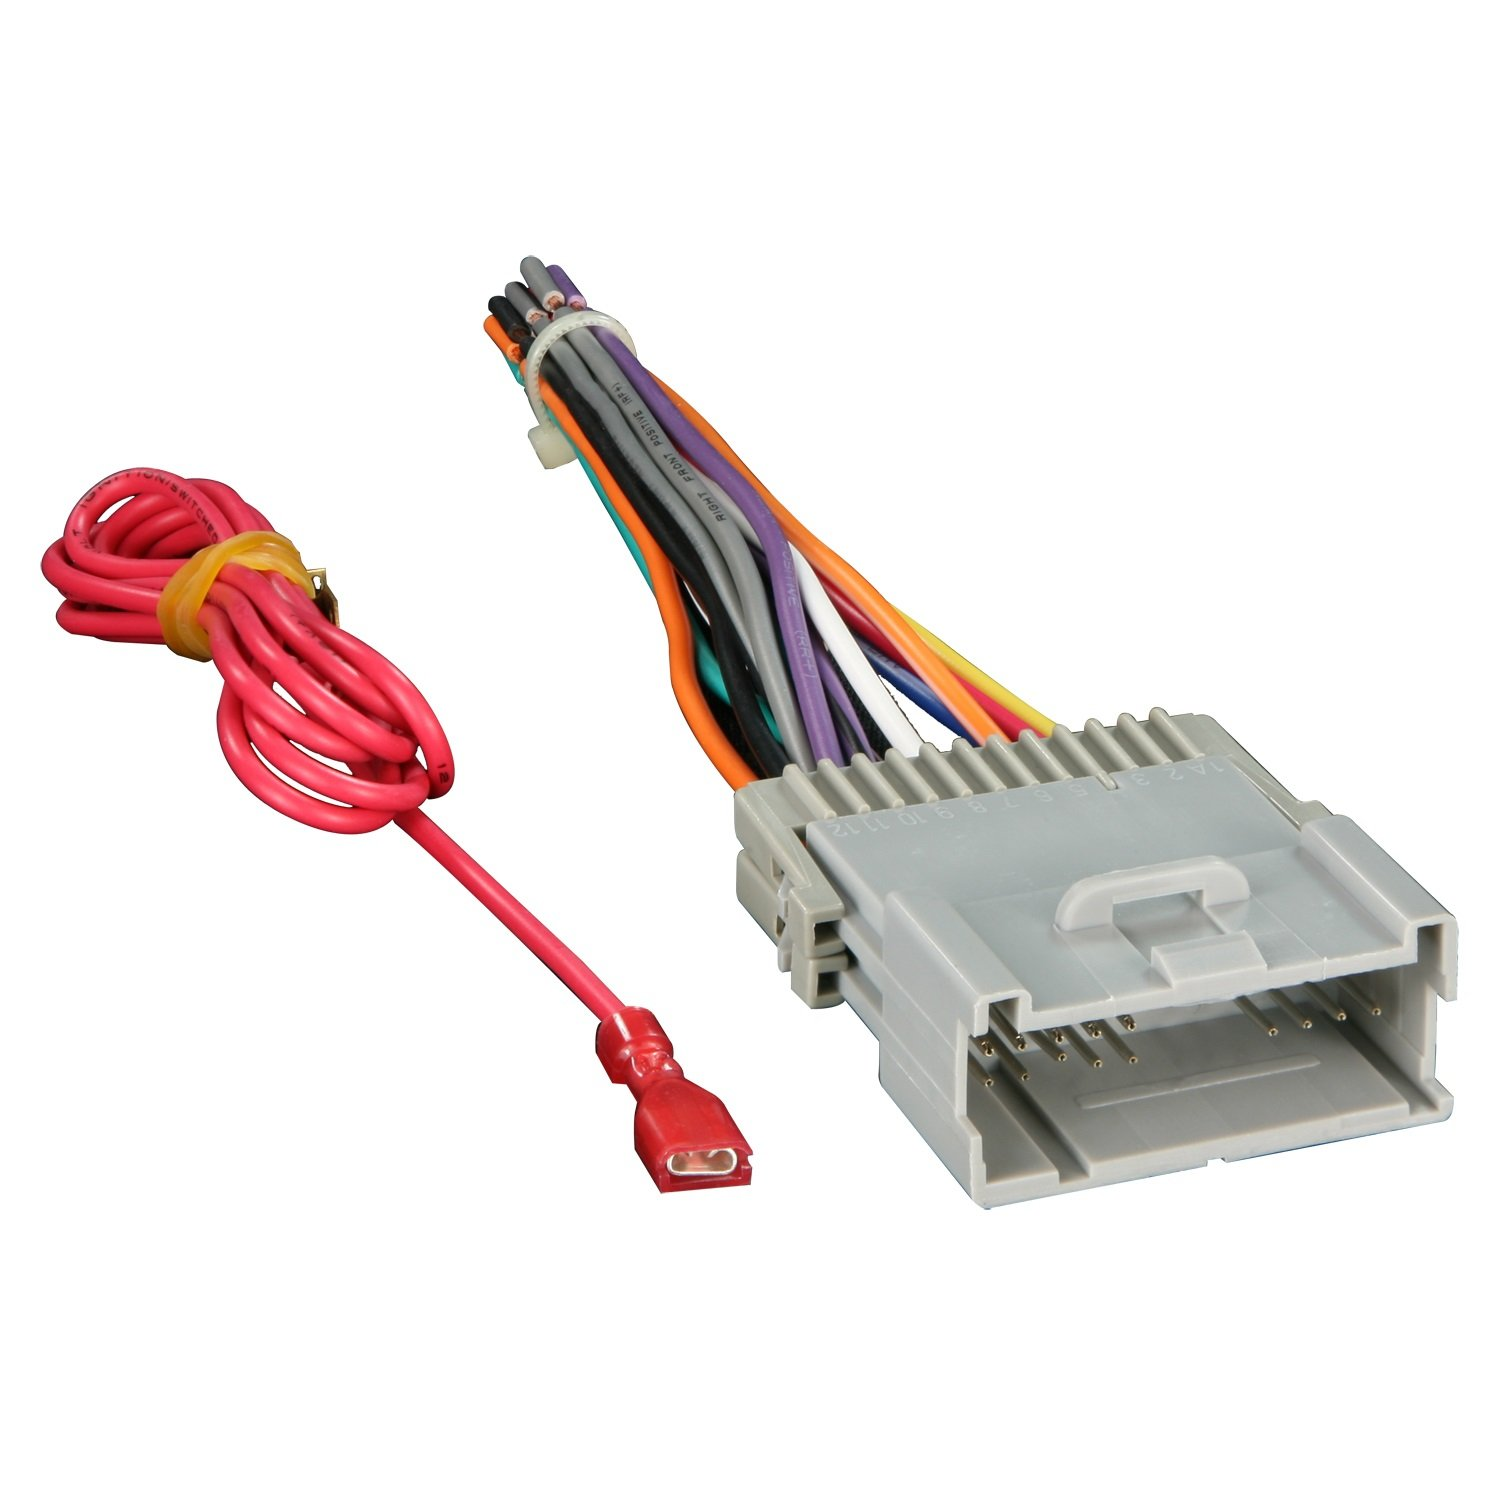 61eewxp9orL._SL1500_ amazon com metra 70 2003 radio wiring harness for gm 98 08 wire harness for car at webbmarketing.co